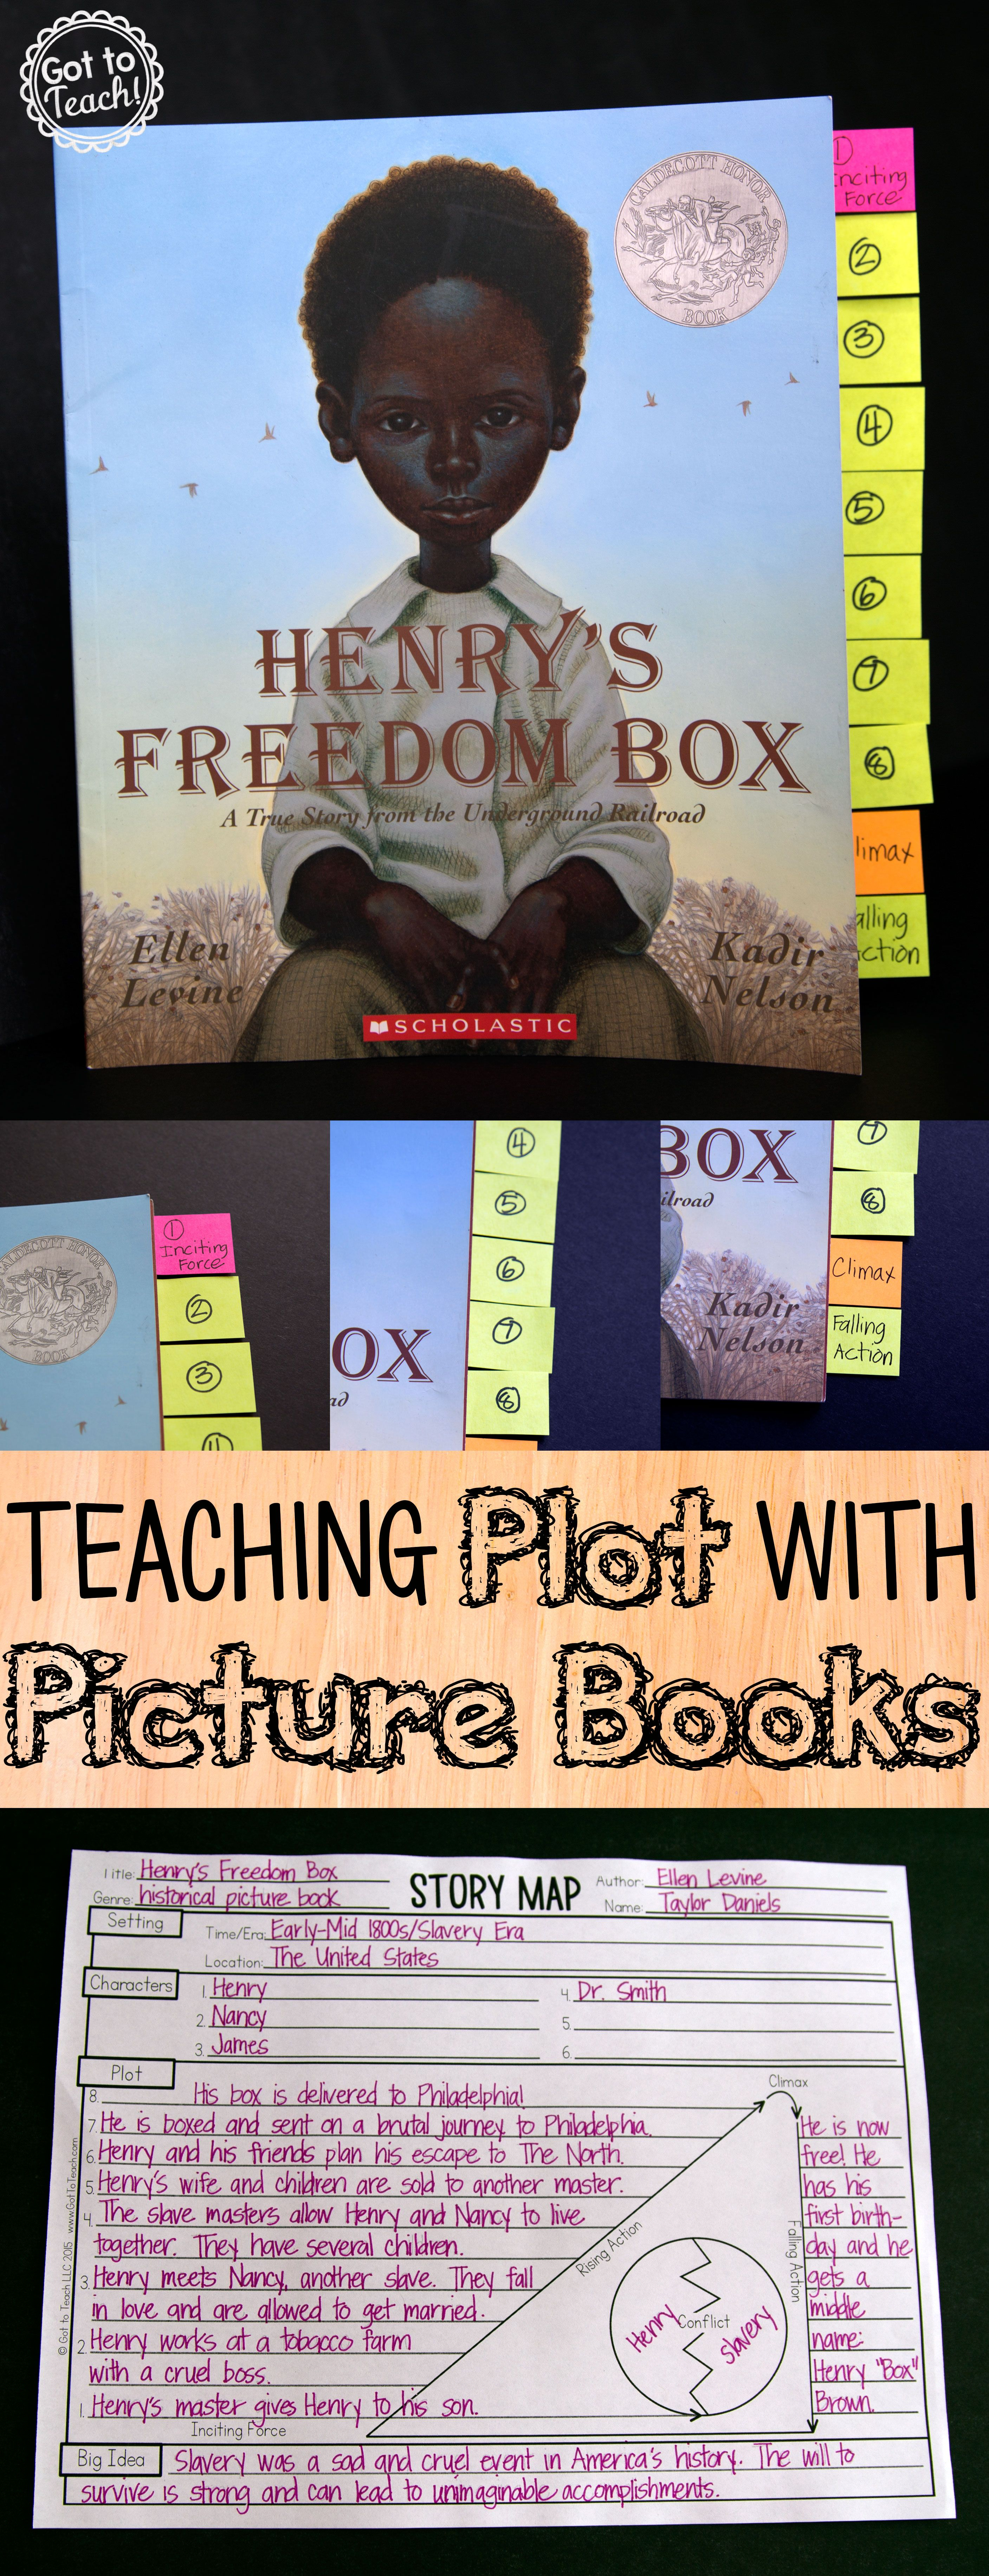 Teaching Plot With Picture Books